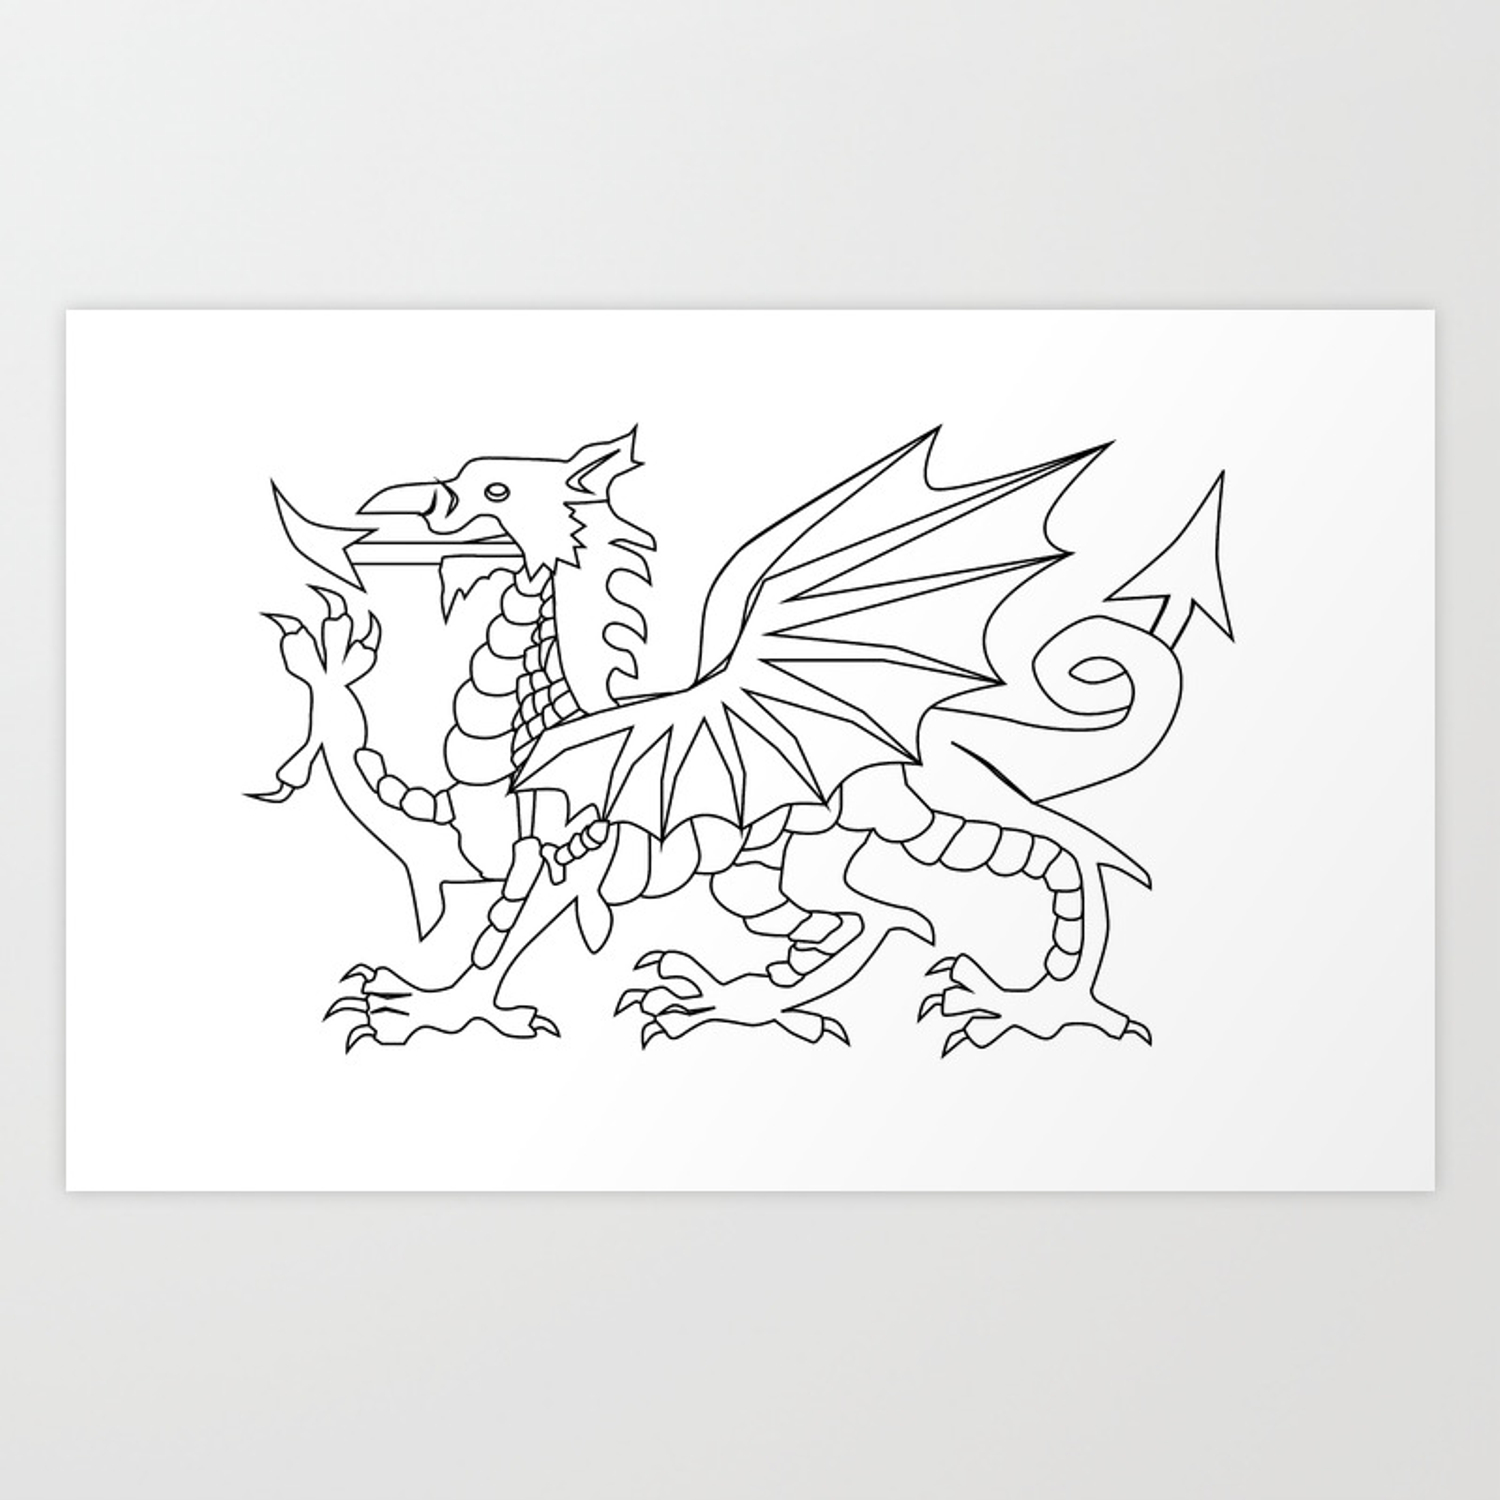 Welsh Dragon Outline Art Print By Homestead Society6